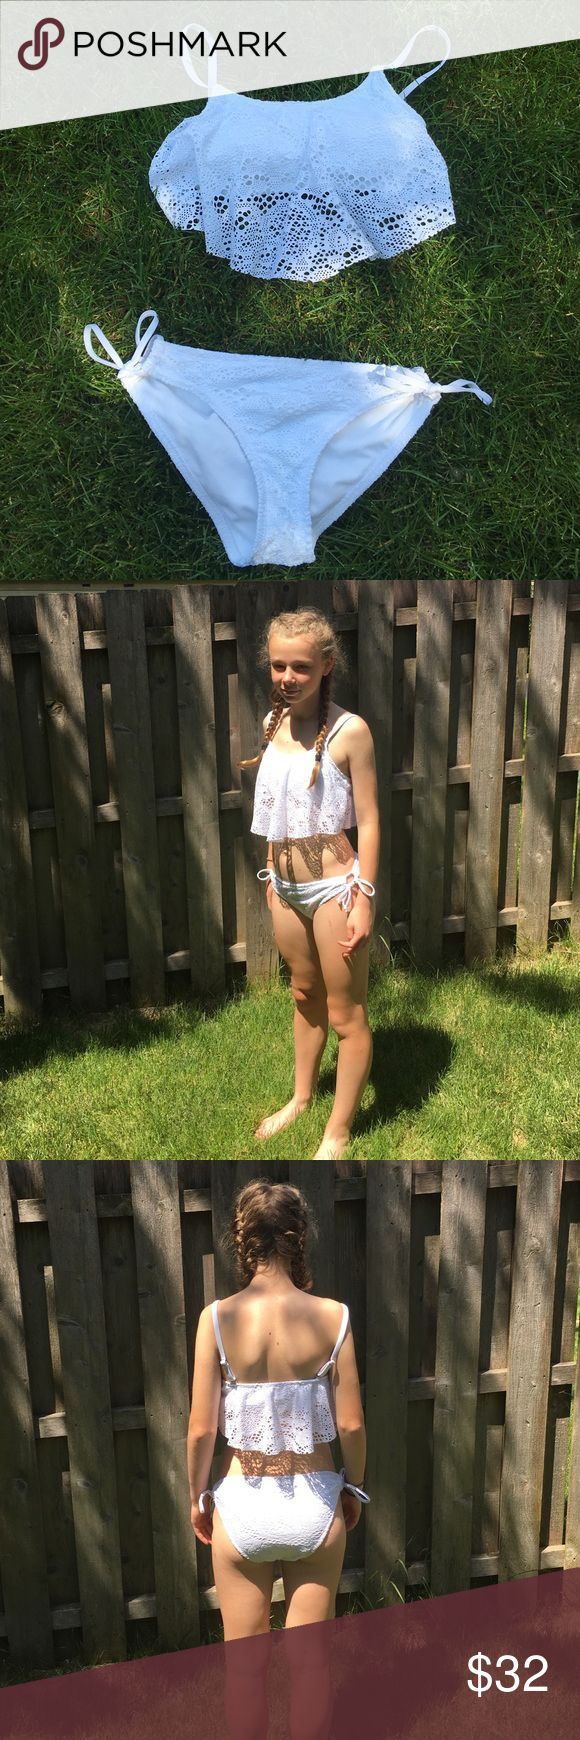 Mossimo Target juniors crochet flutter Bikini S This is an adorable white crochet flounce bikini from Mossimo (Target). It was only worn once to a pool party. Size juniors small but fits a 14-16 XL and kids 10-12 M as well. Mossimo Supply Co. Swim Bikinis